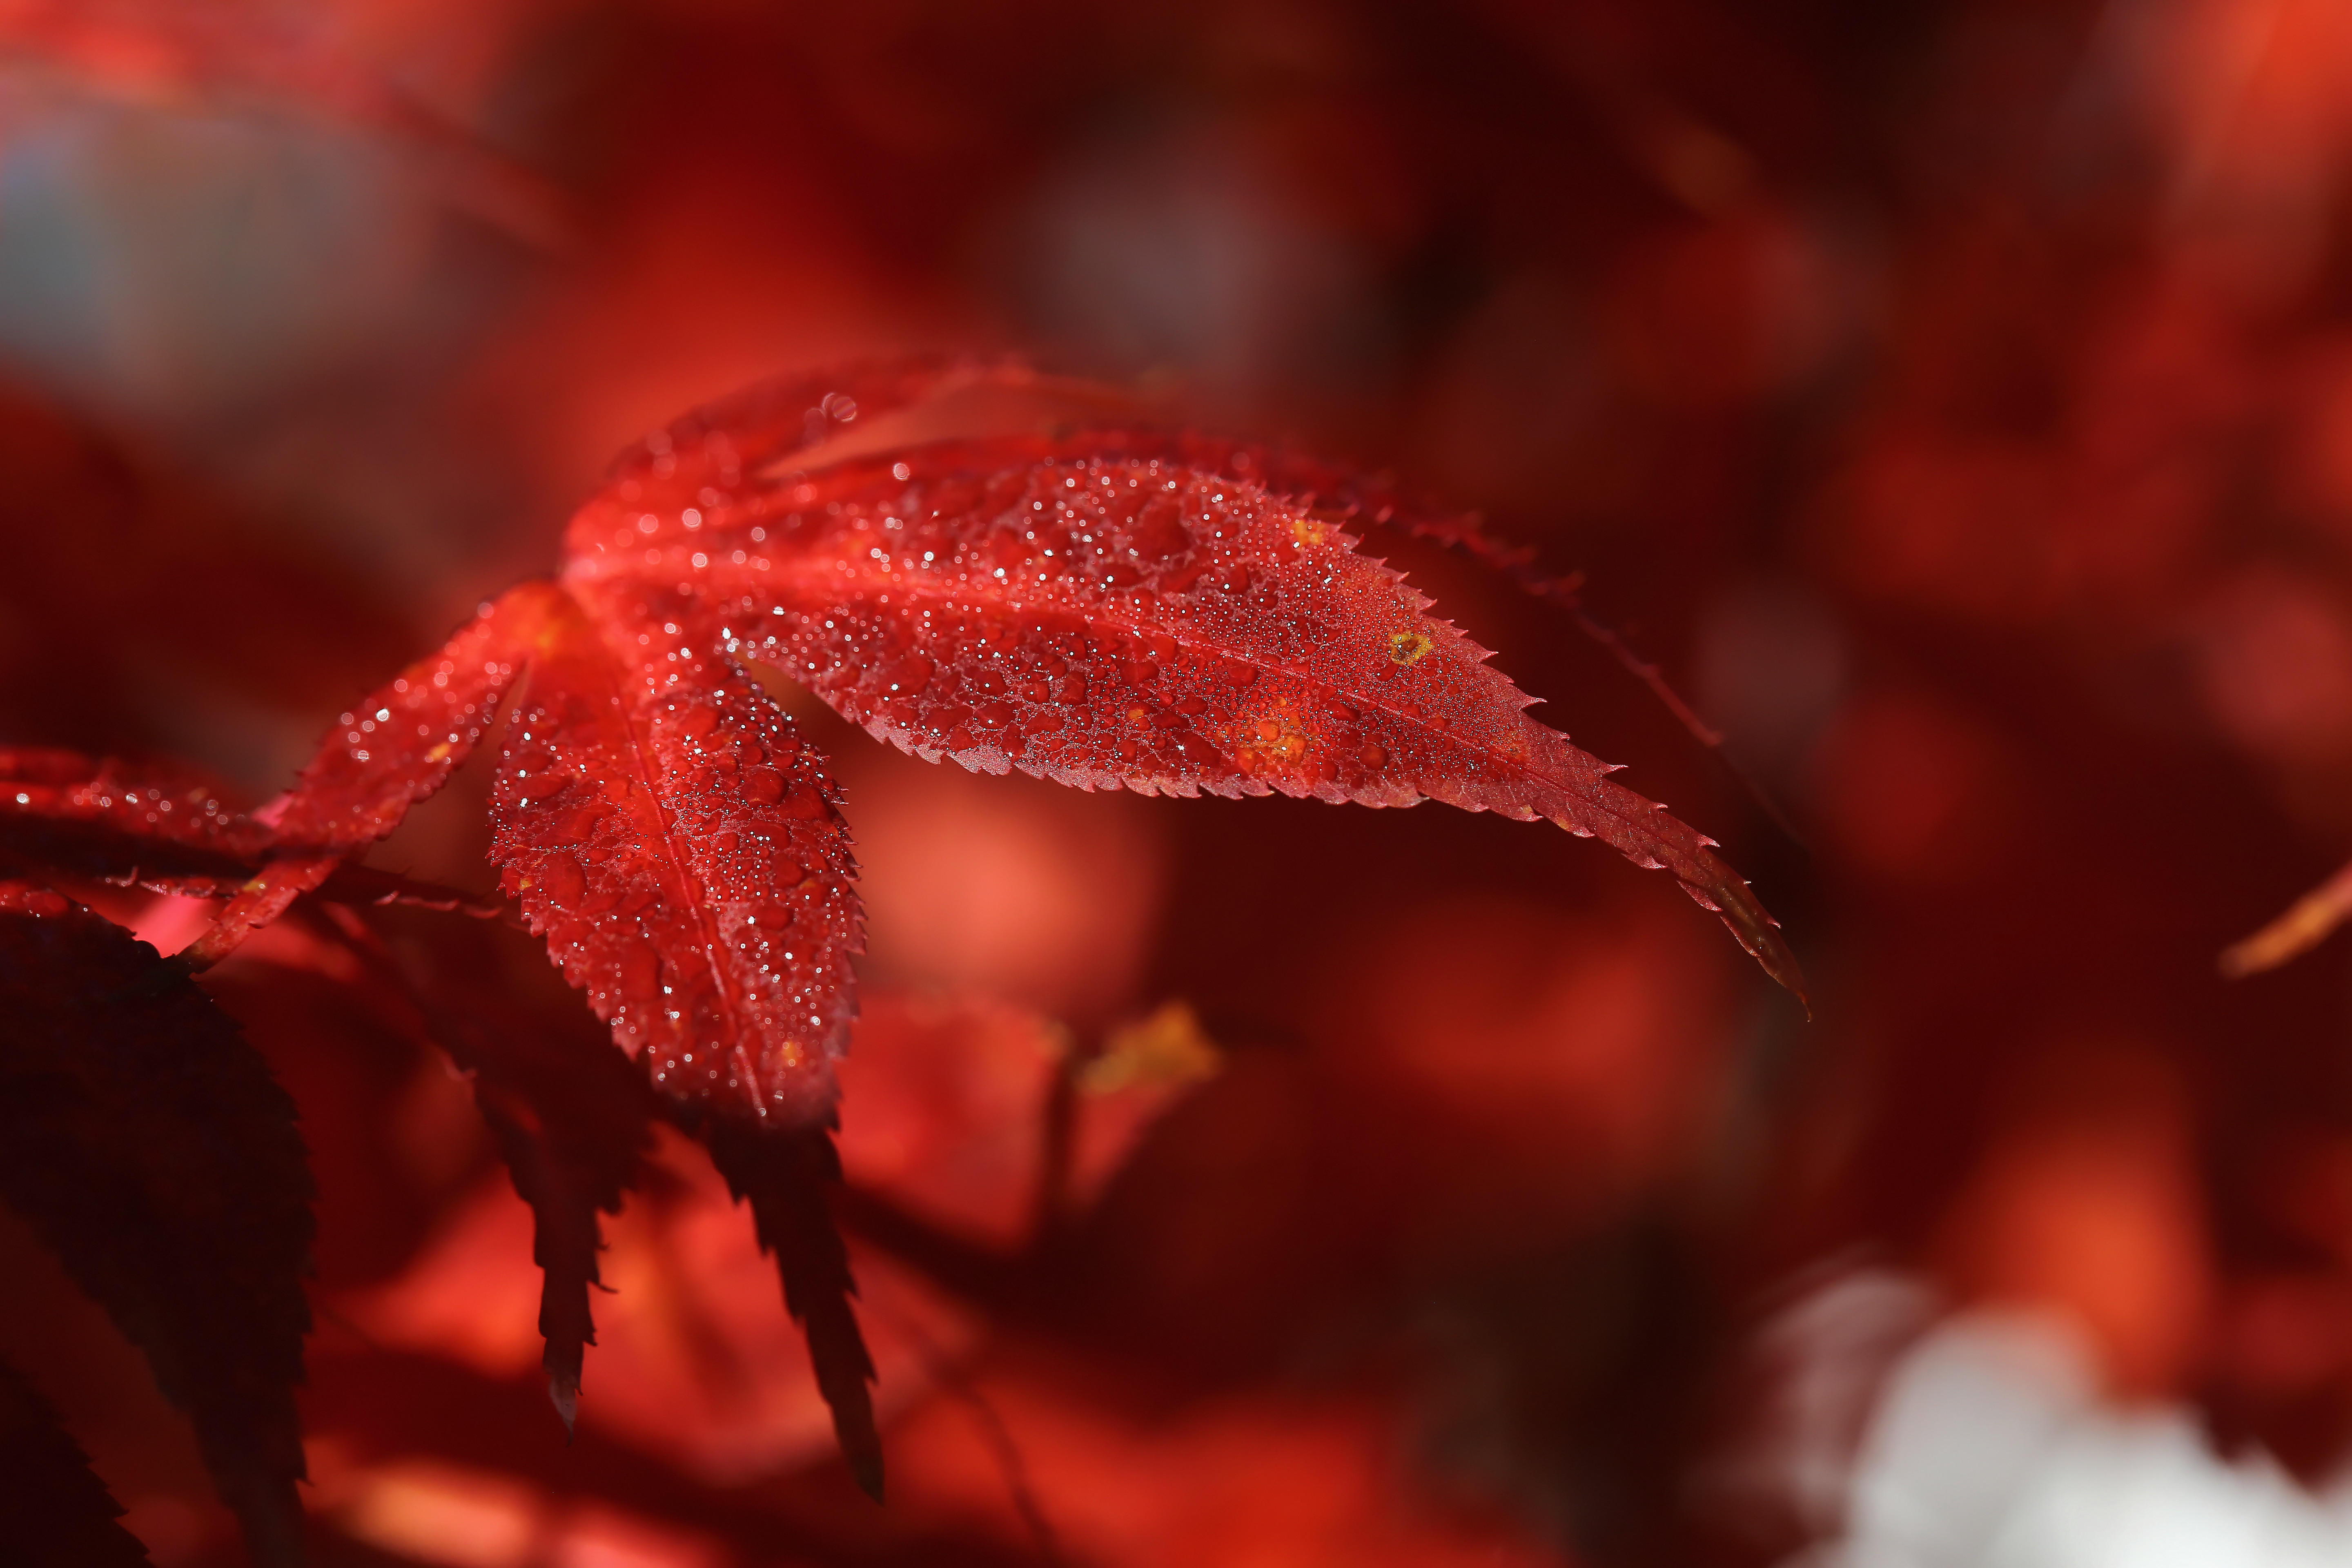 Image: Leaves, red, Burgundy, autumn